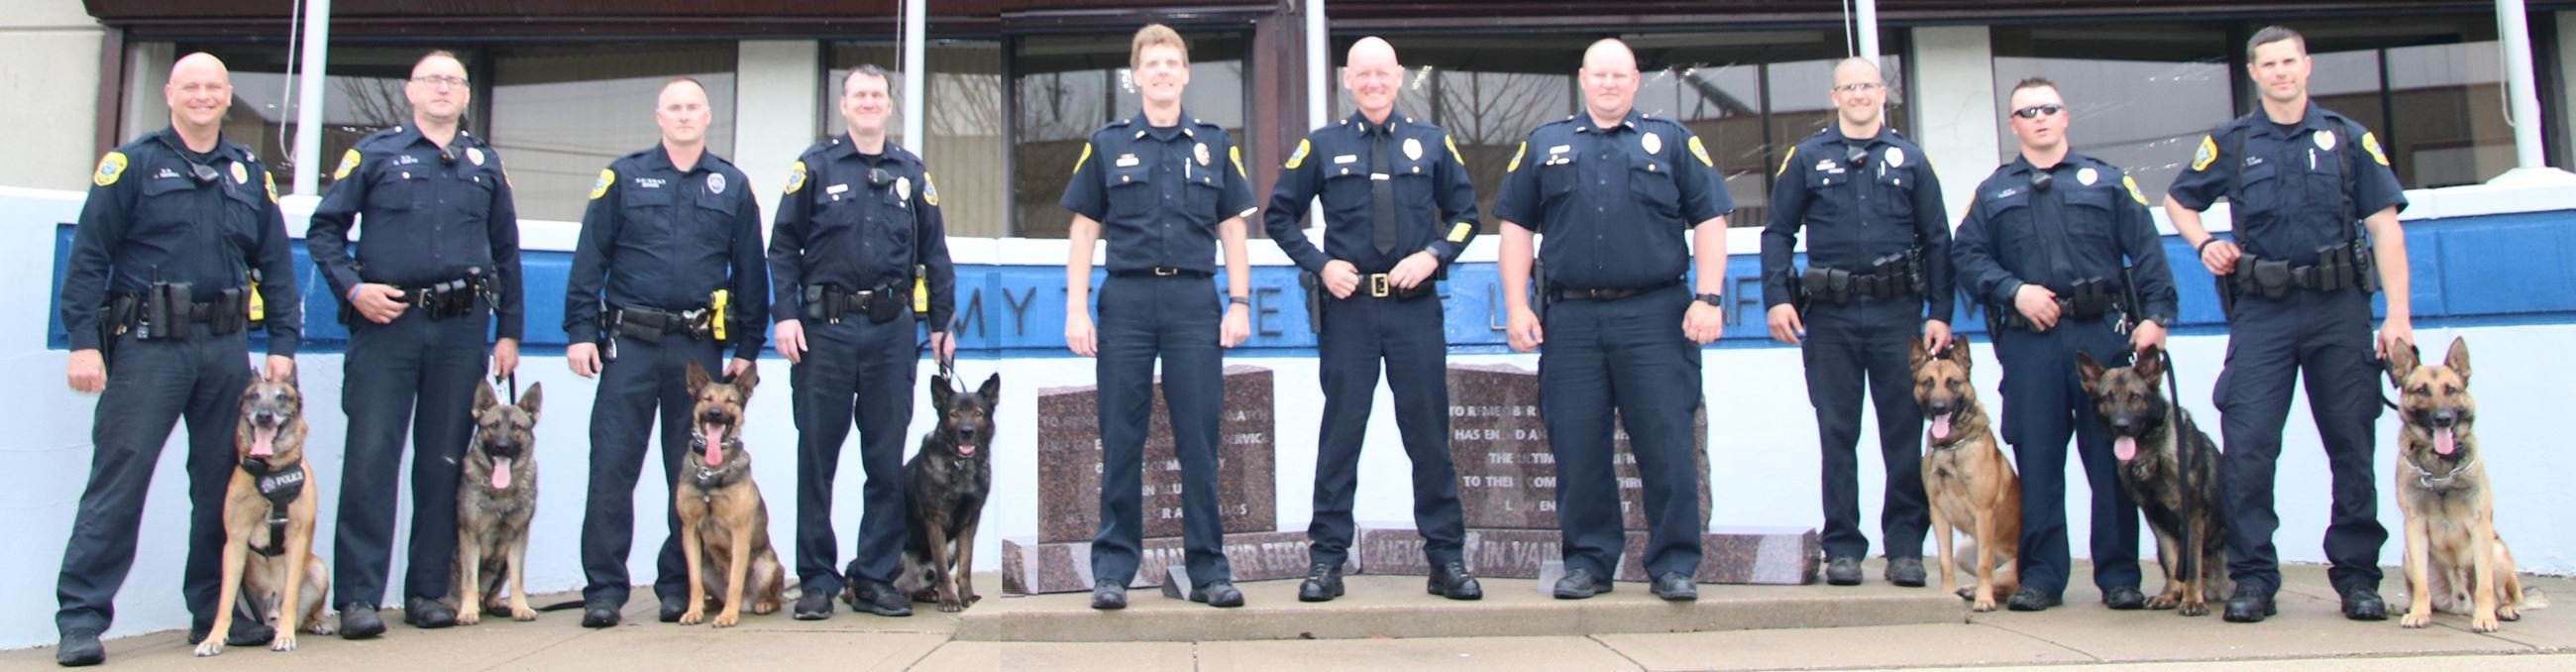 Officers of the Green Bay K-9 Unit